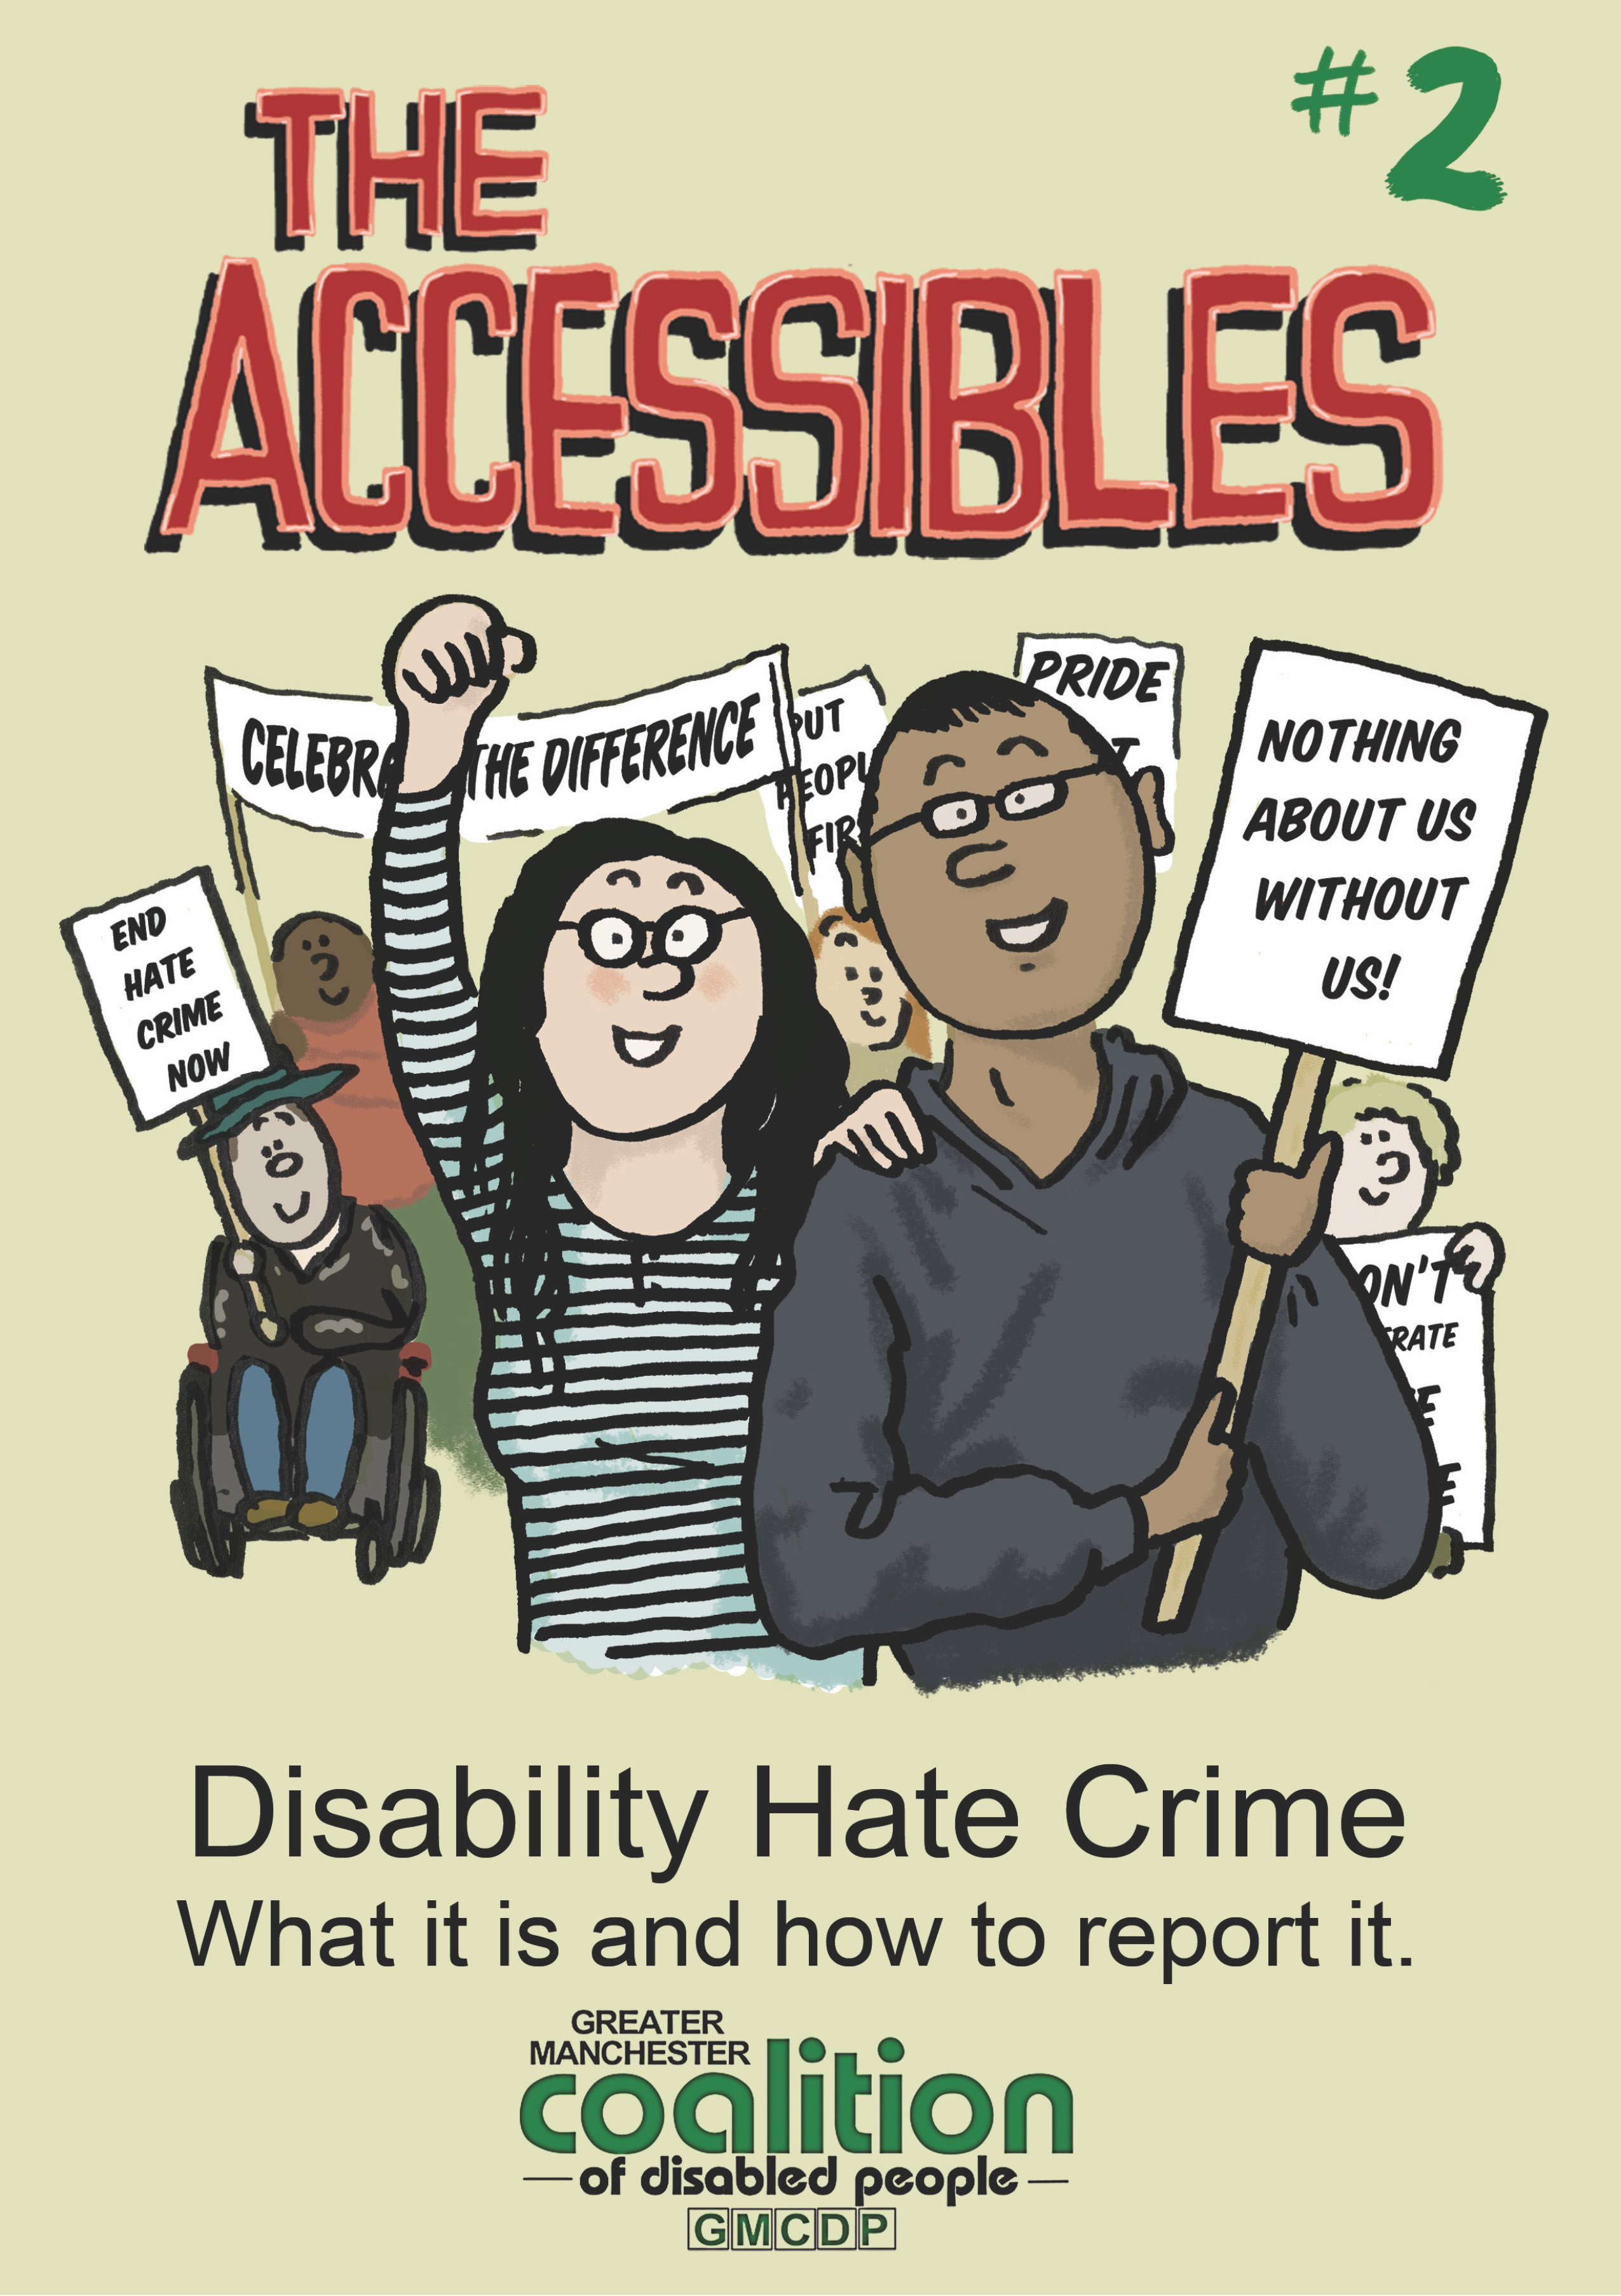 The Accessibles #2 - Disability Hate Crime: What It Is And How To Report It